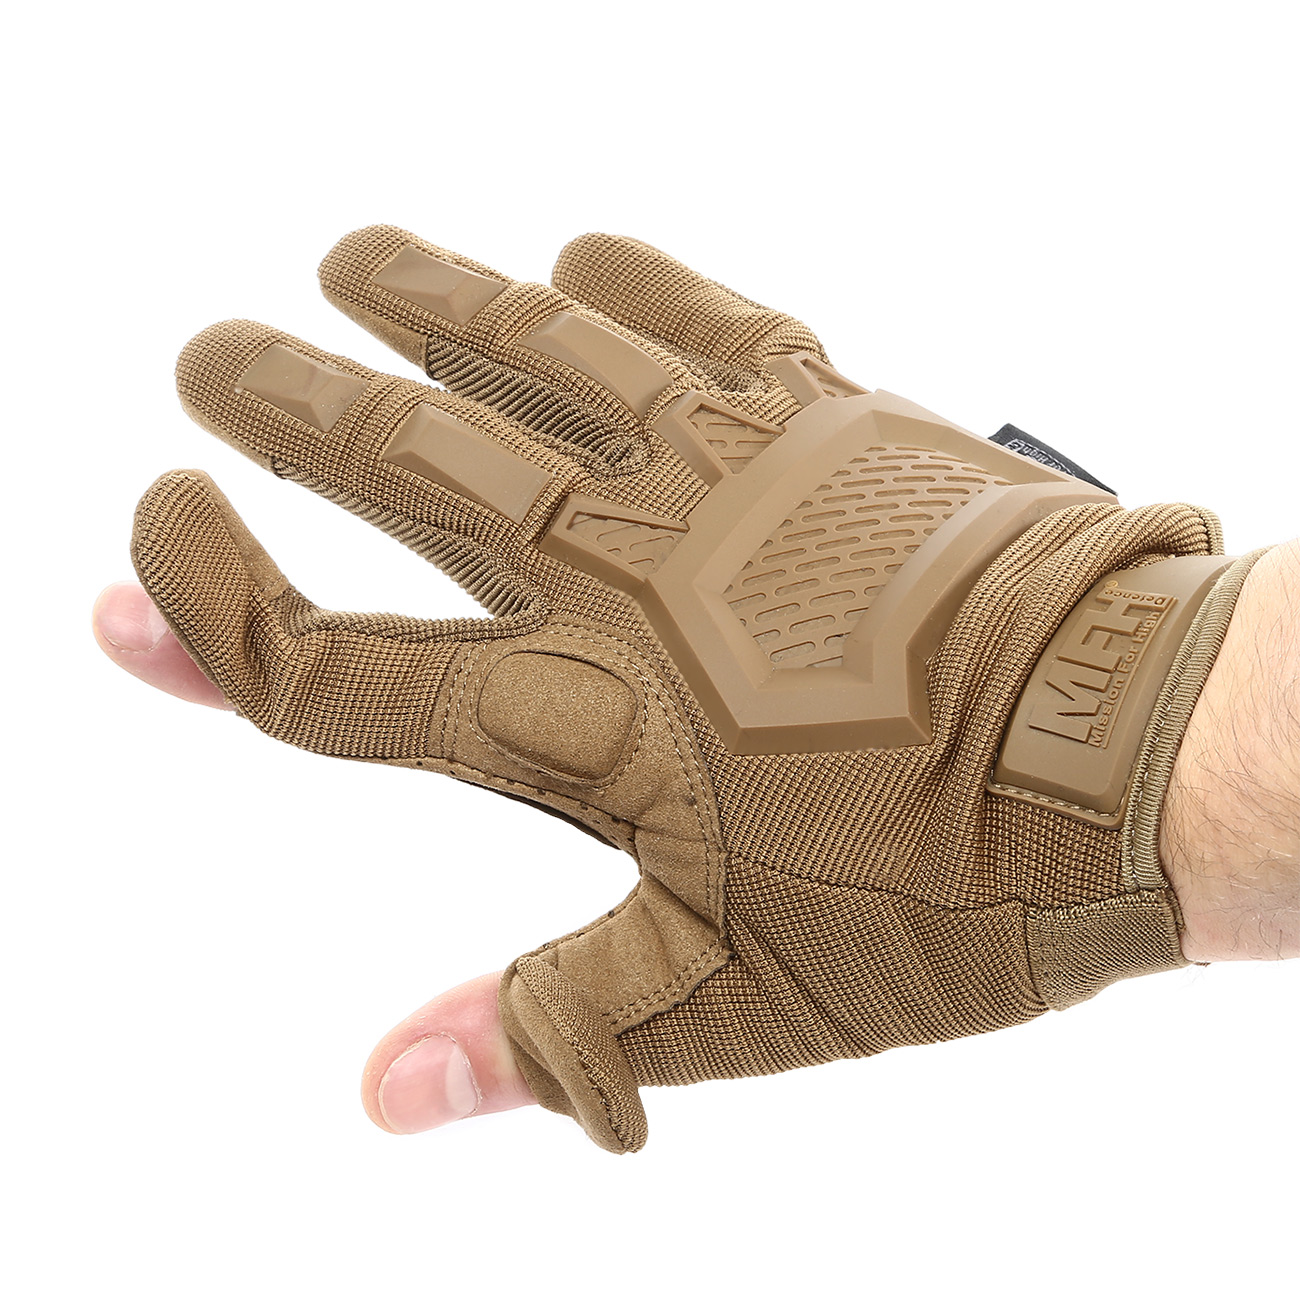 MFH Tactical Handschuhe Action coyote tan 5